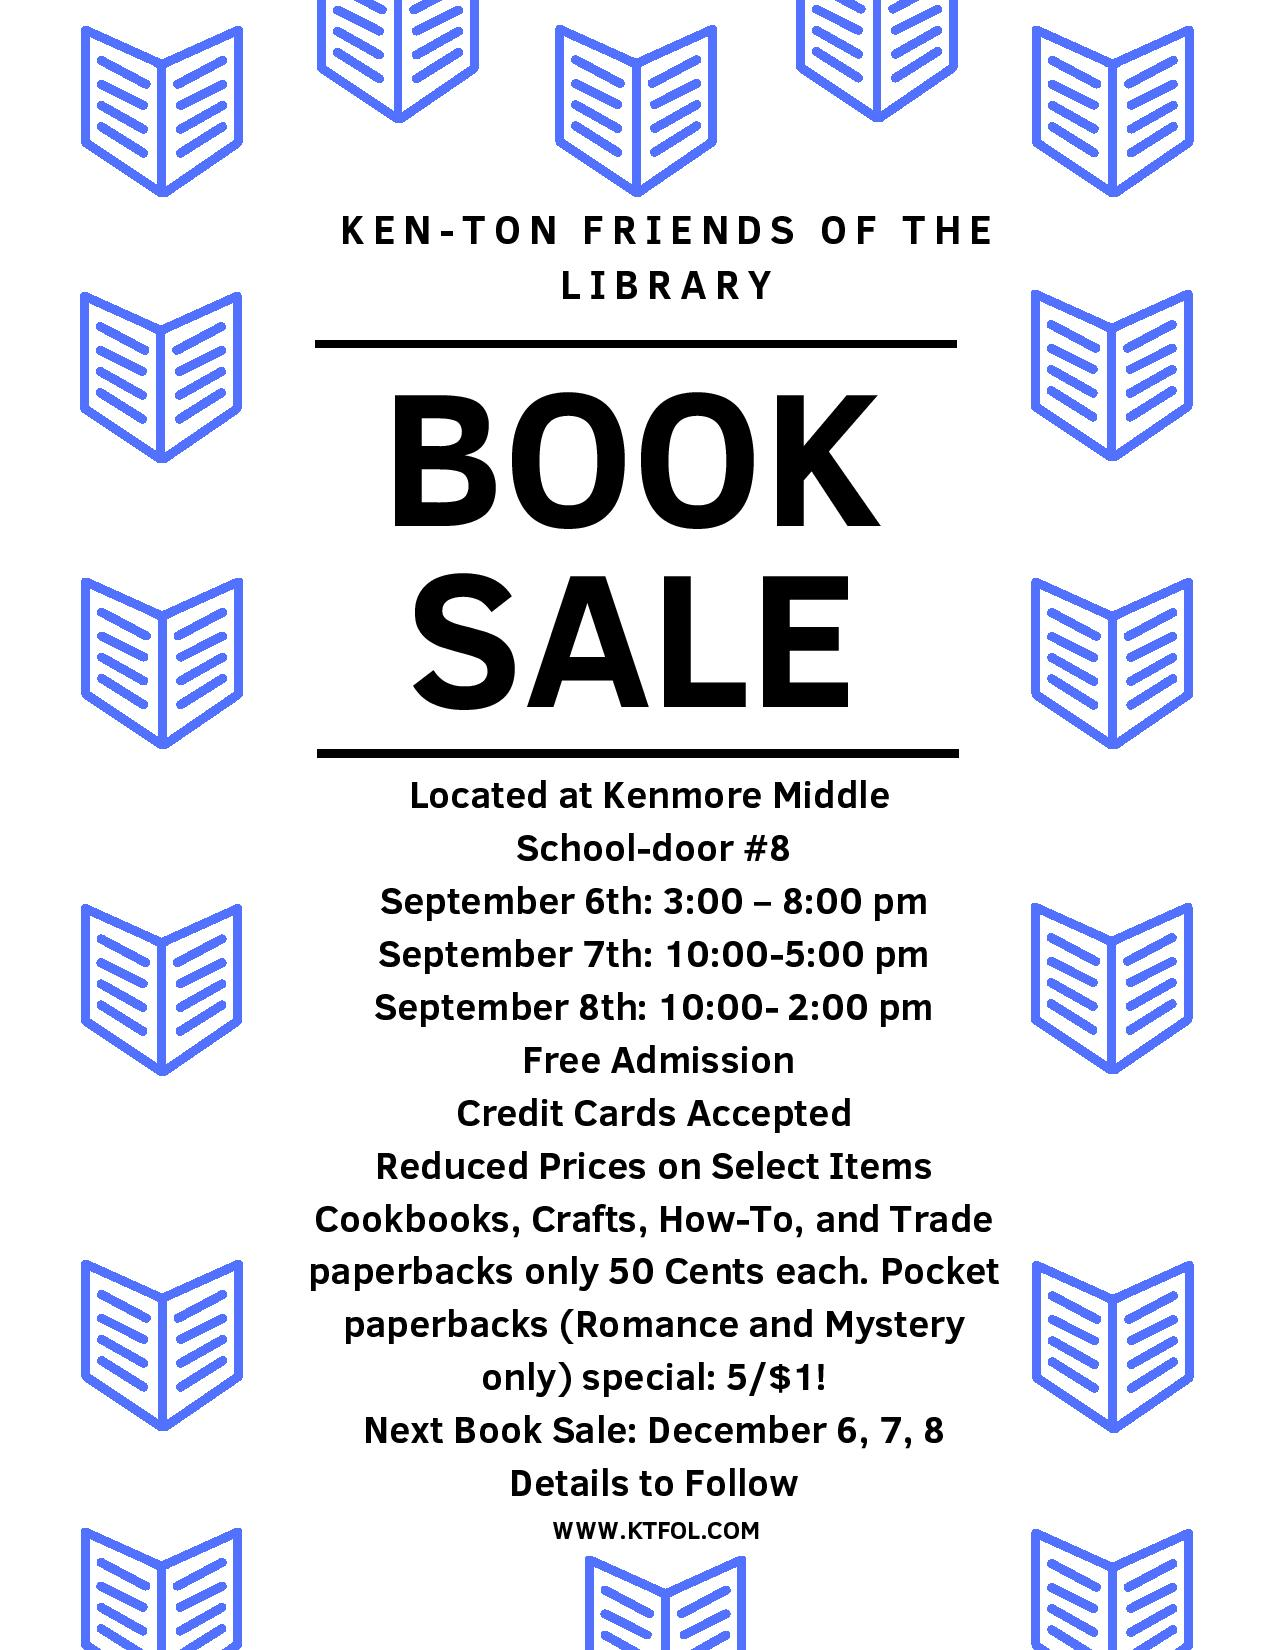 Ken-Ton Friends of the Library Book Sale (at the Kenmore Middle School)